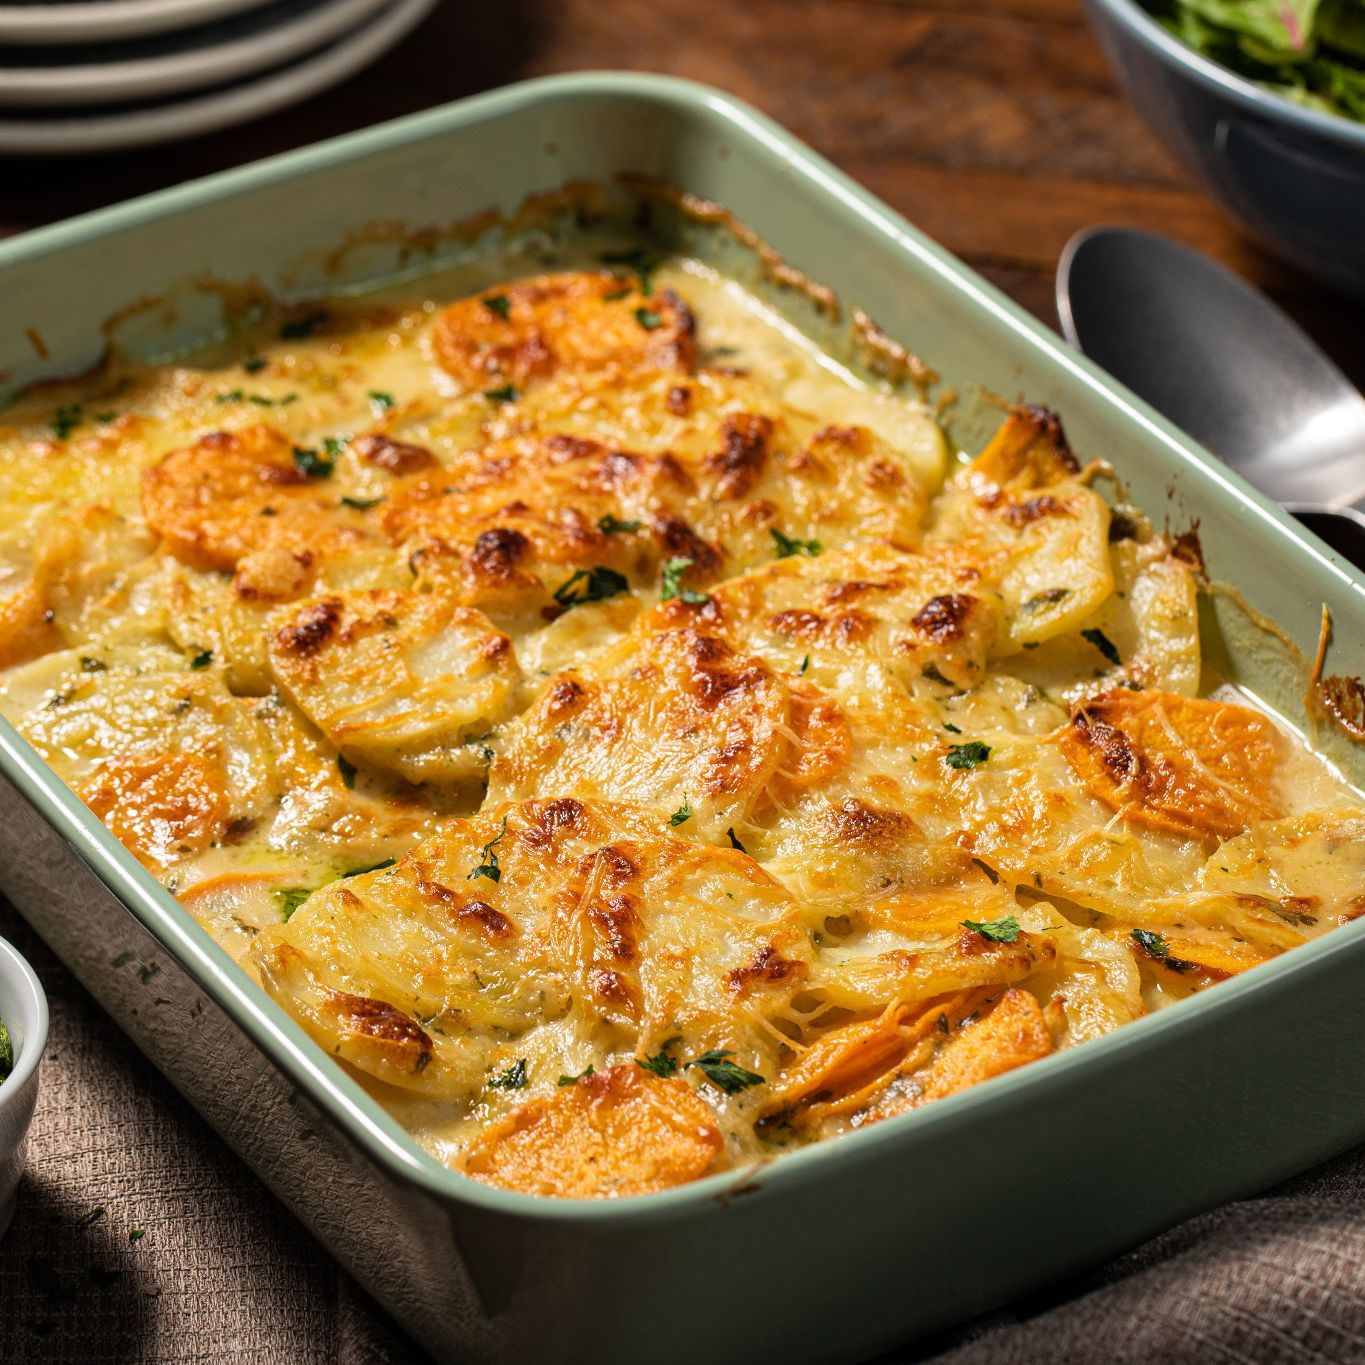 potato_gratin_with_garlic_&_parsley_8221.jpg